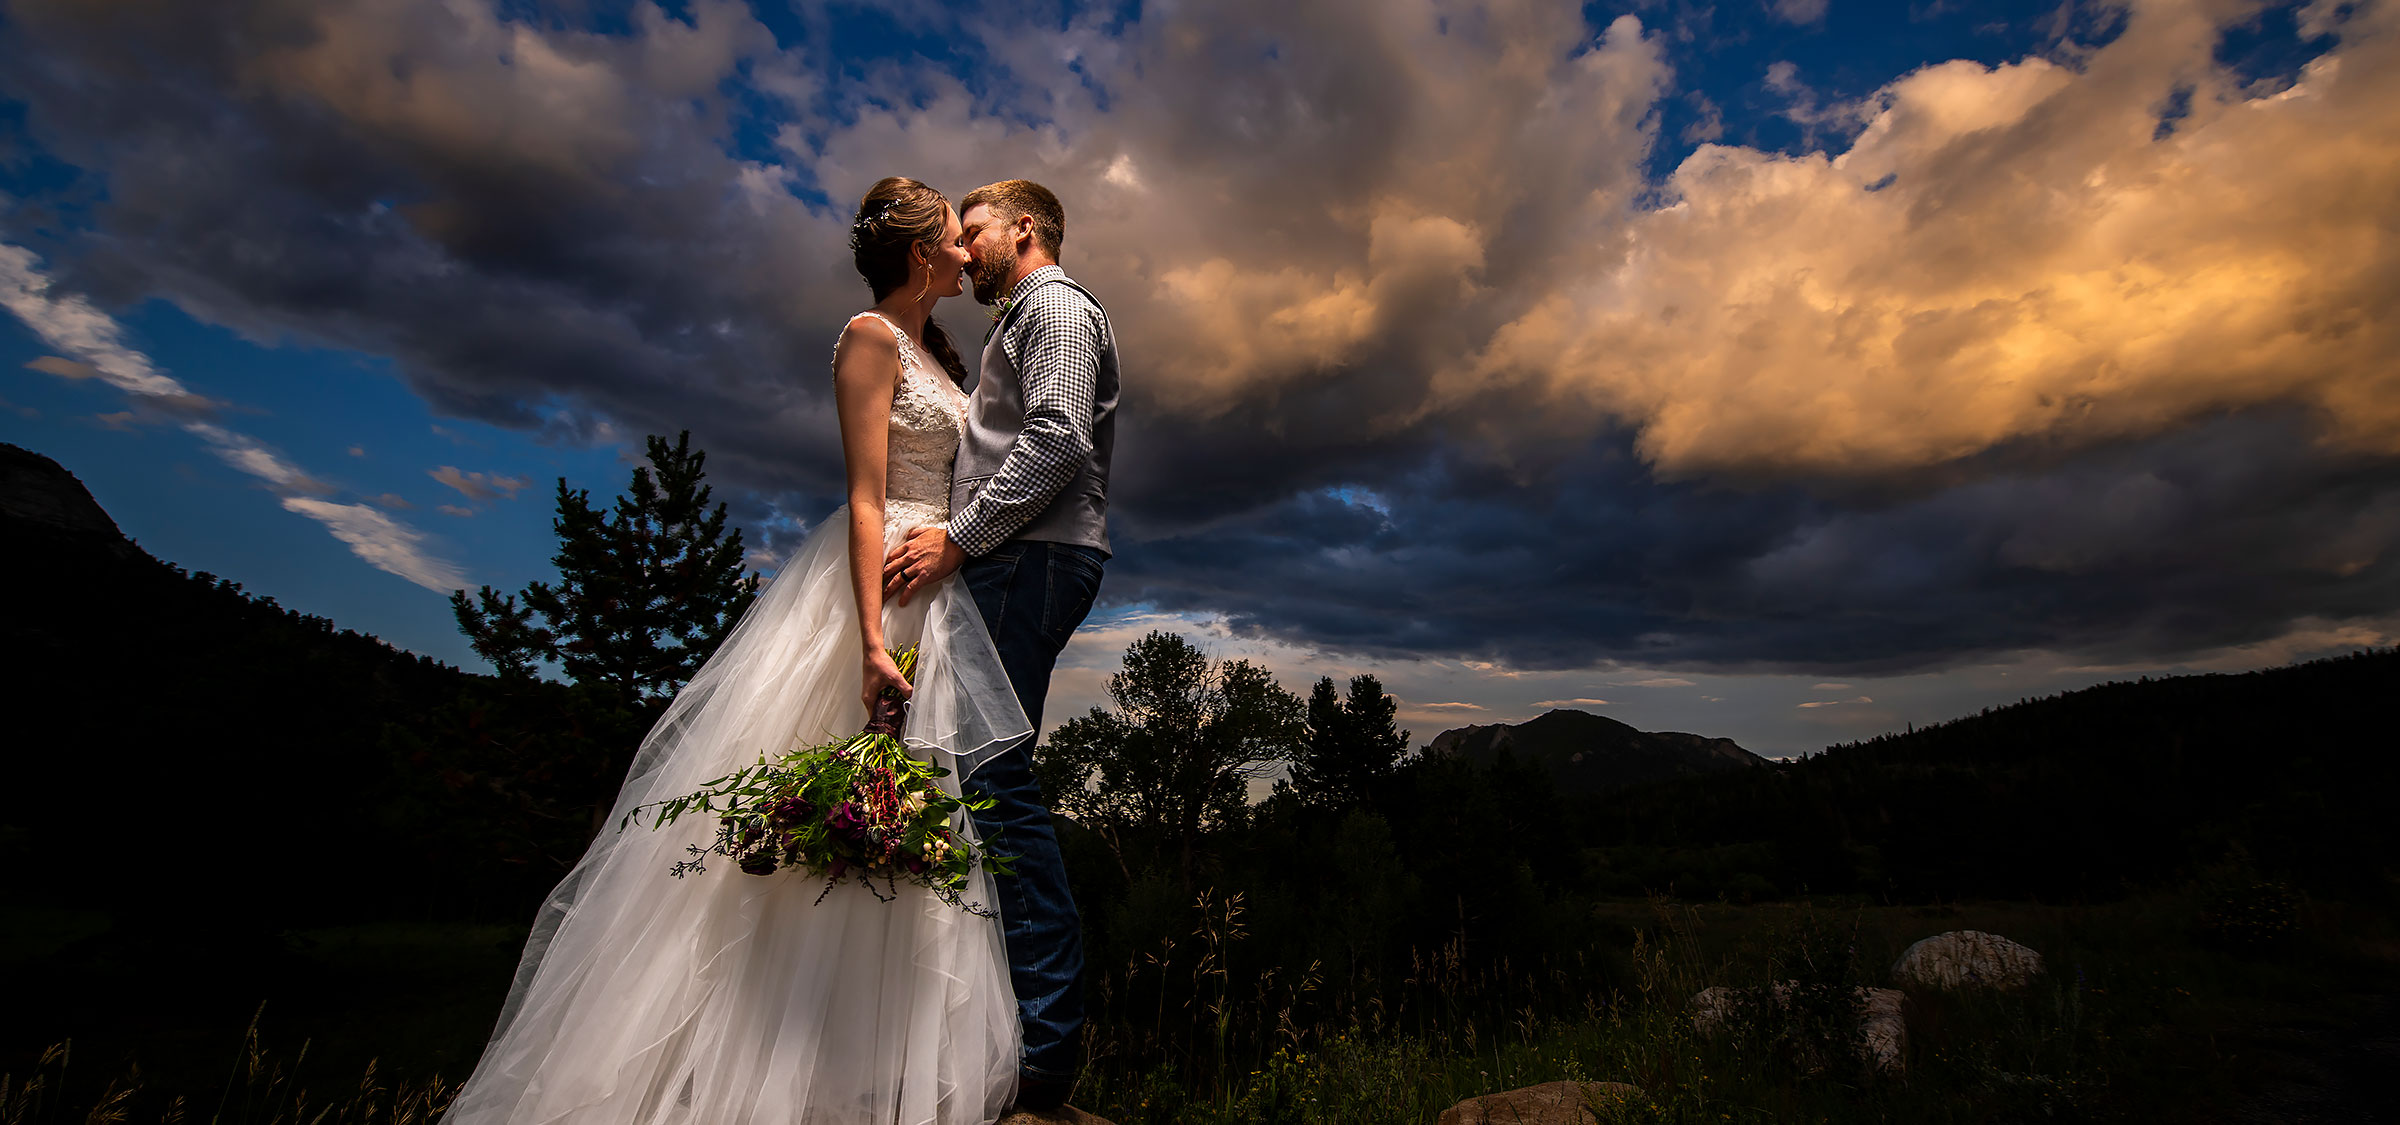 Sunset Wedding Photo | Rocky Mountain National Park Wedding | Estes Park Wedding Photographers | J. La Plante Photo